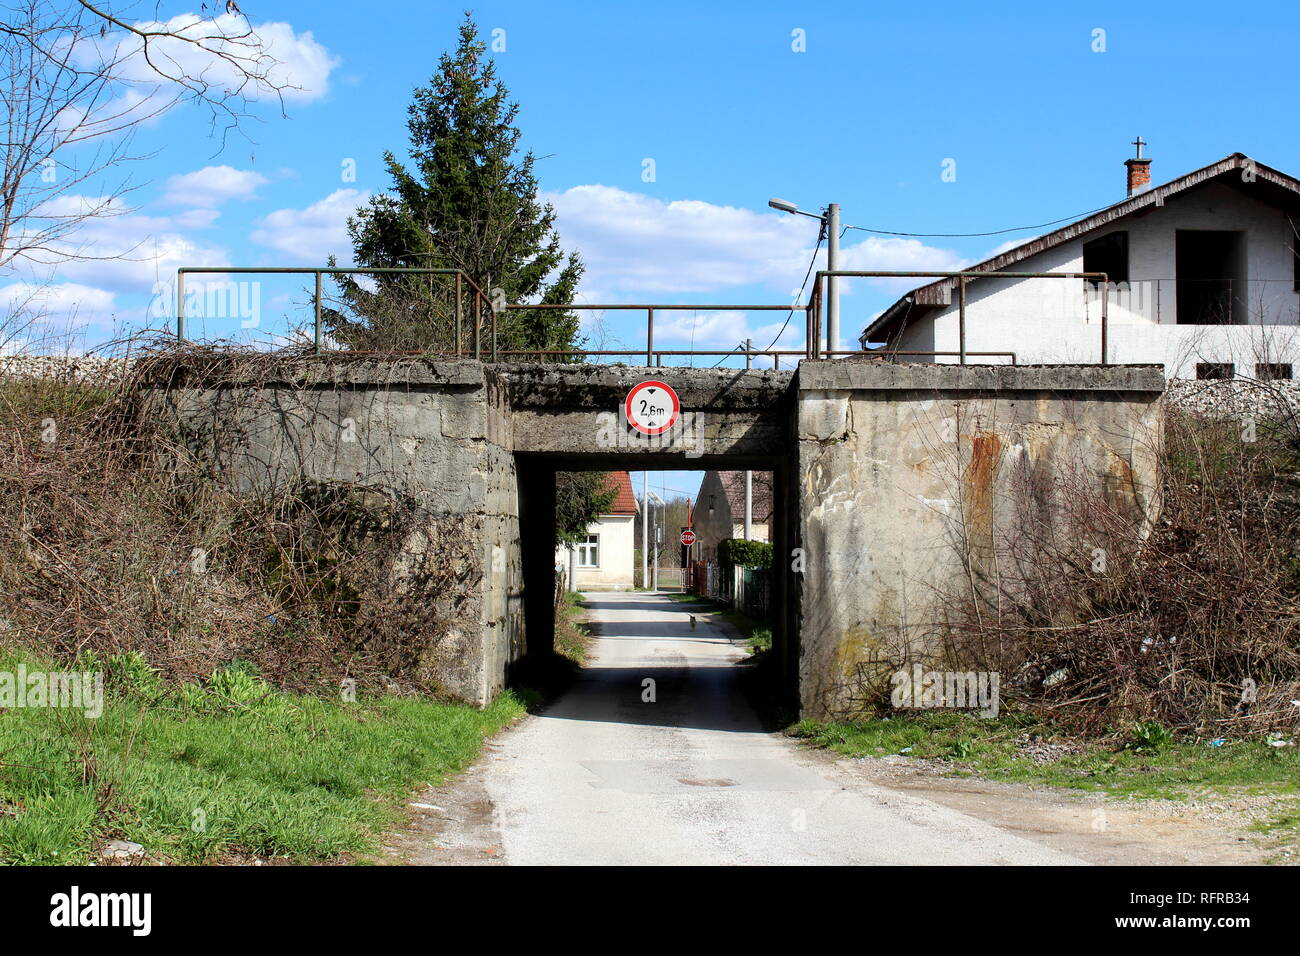 Old train overpass with cracked concrete partially overgrown with dried plants without leaves with narrow paved road going through it and houses - Stock Image